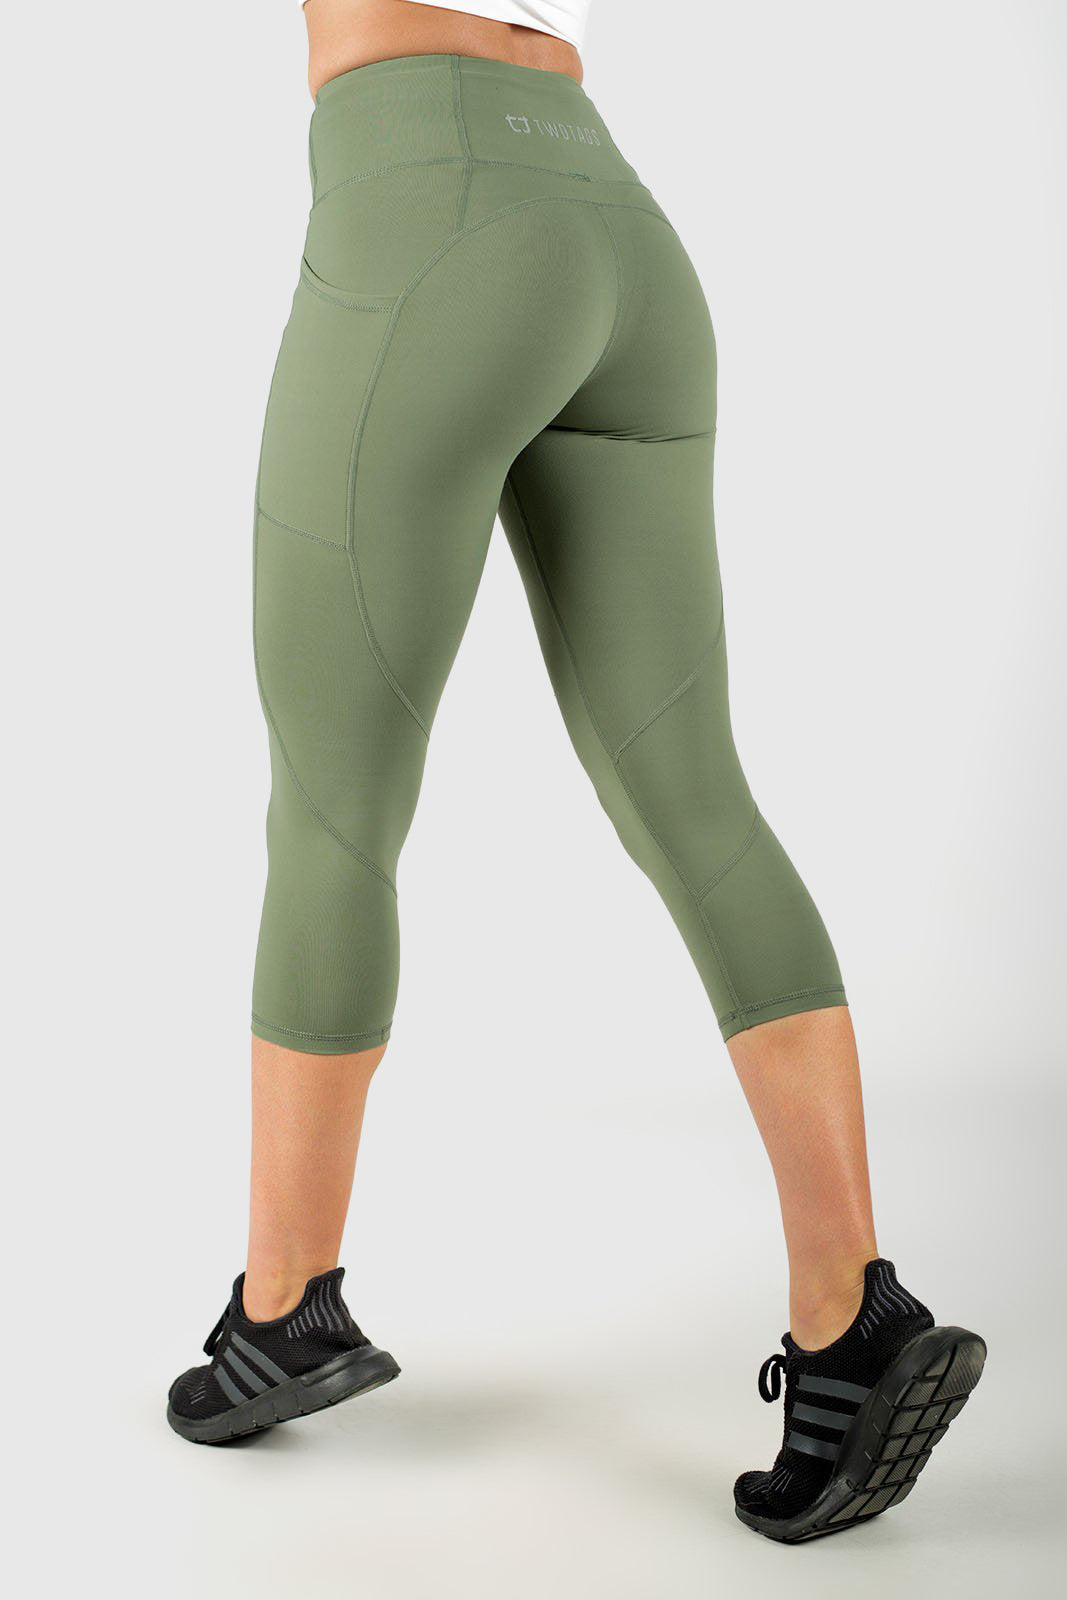 d233962026a36 Sweetheart 7/8 Highwaisted Leggings - Olive – Twotags